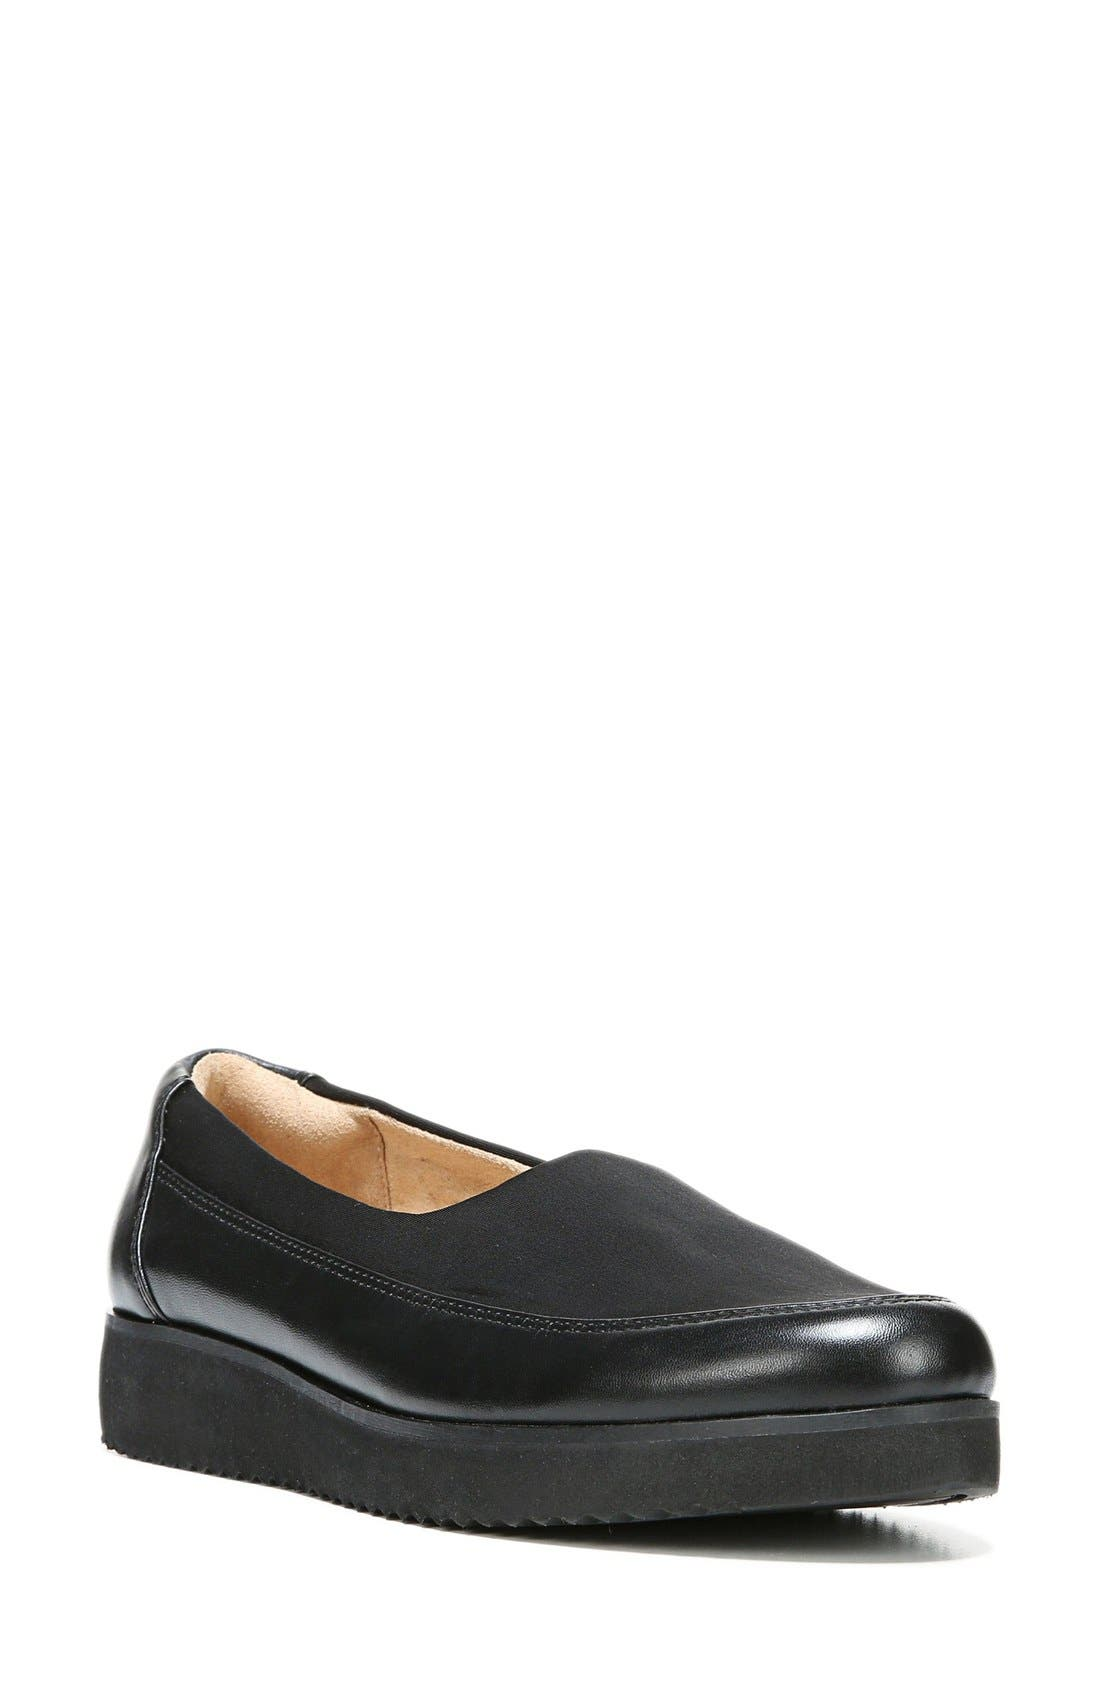 Main Image - Naturalizer 'Neoma' Loafer (Women)